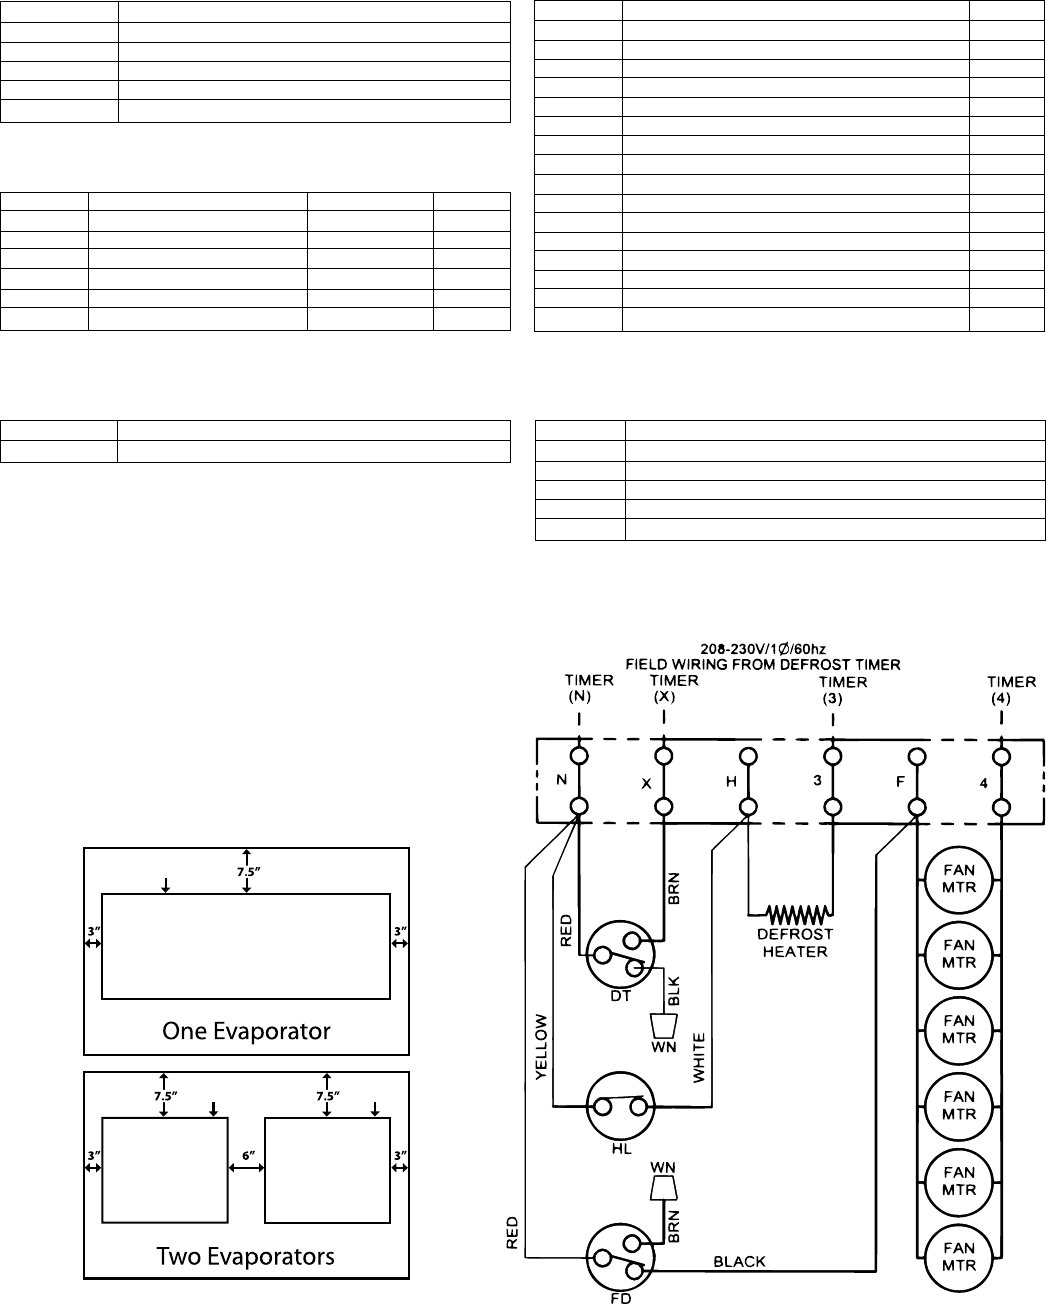 2f271777 ed48 431c affa 693c84f3fb6b bgb page 11 of heatcraft refrigeration products humidifier 25005601 heatcraft freezer wiring diagram at webbmarketing.co